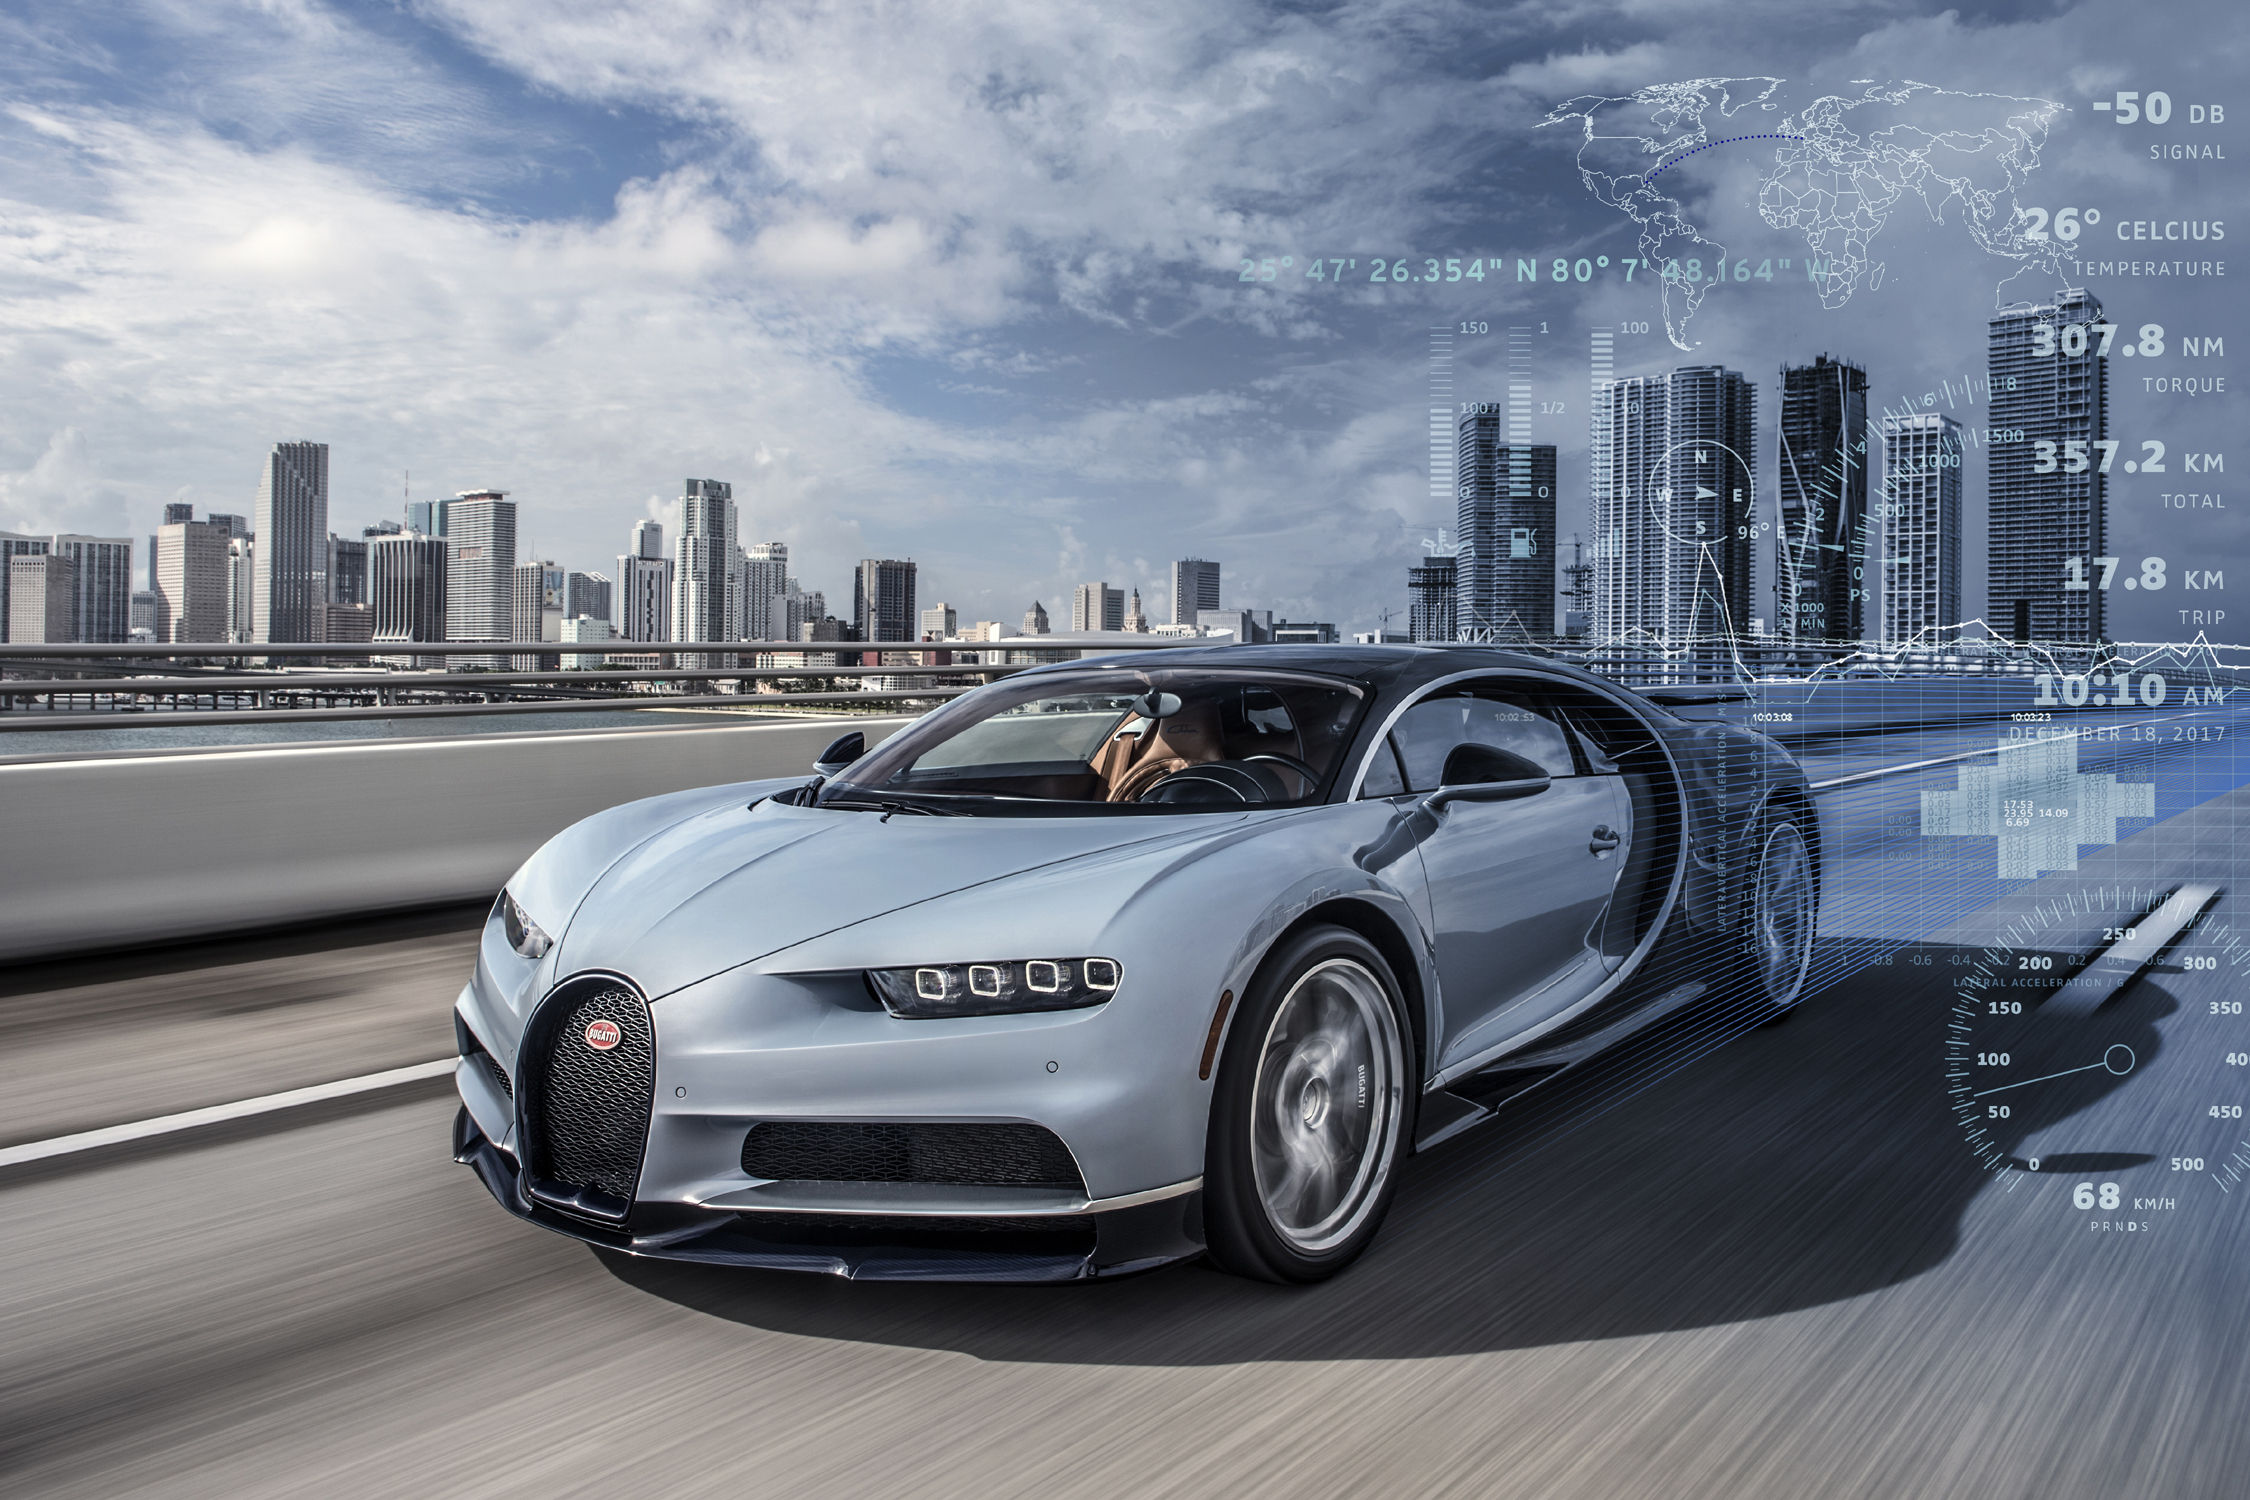 bugatti chiron une assistance unique digne de la f1 actualit automobile motorlegend. Black Bedroom Furniture Sets. Home Design Ideas